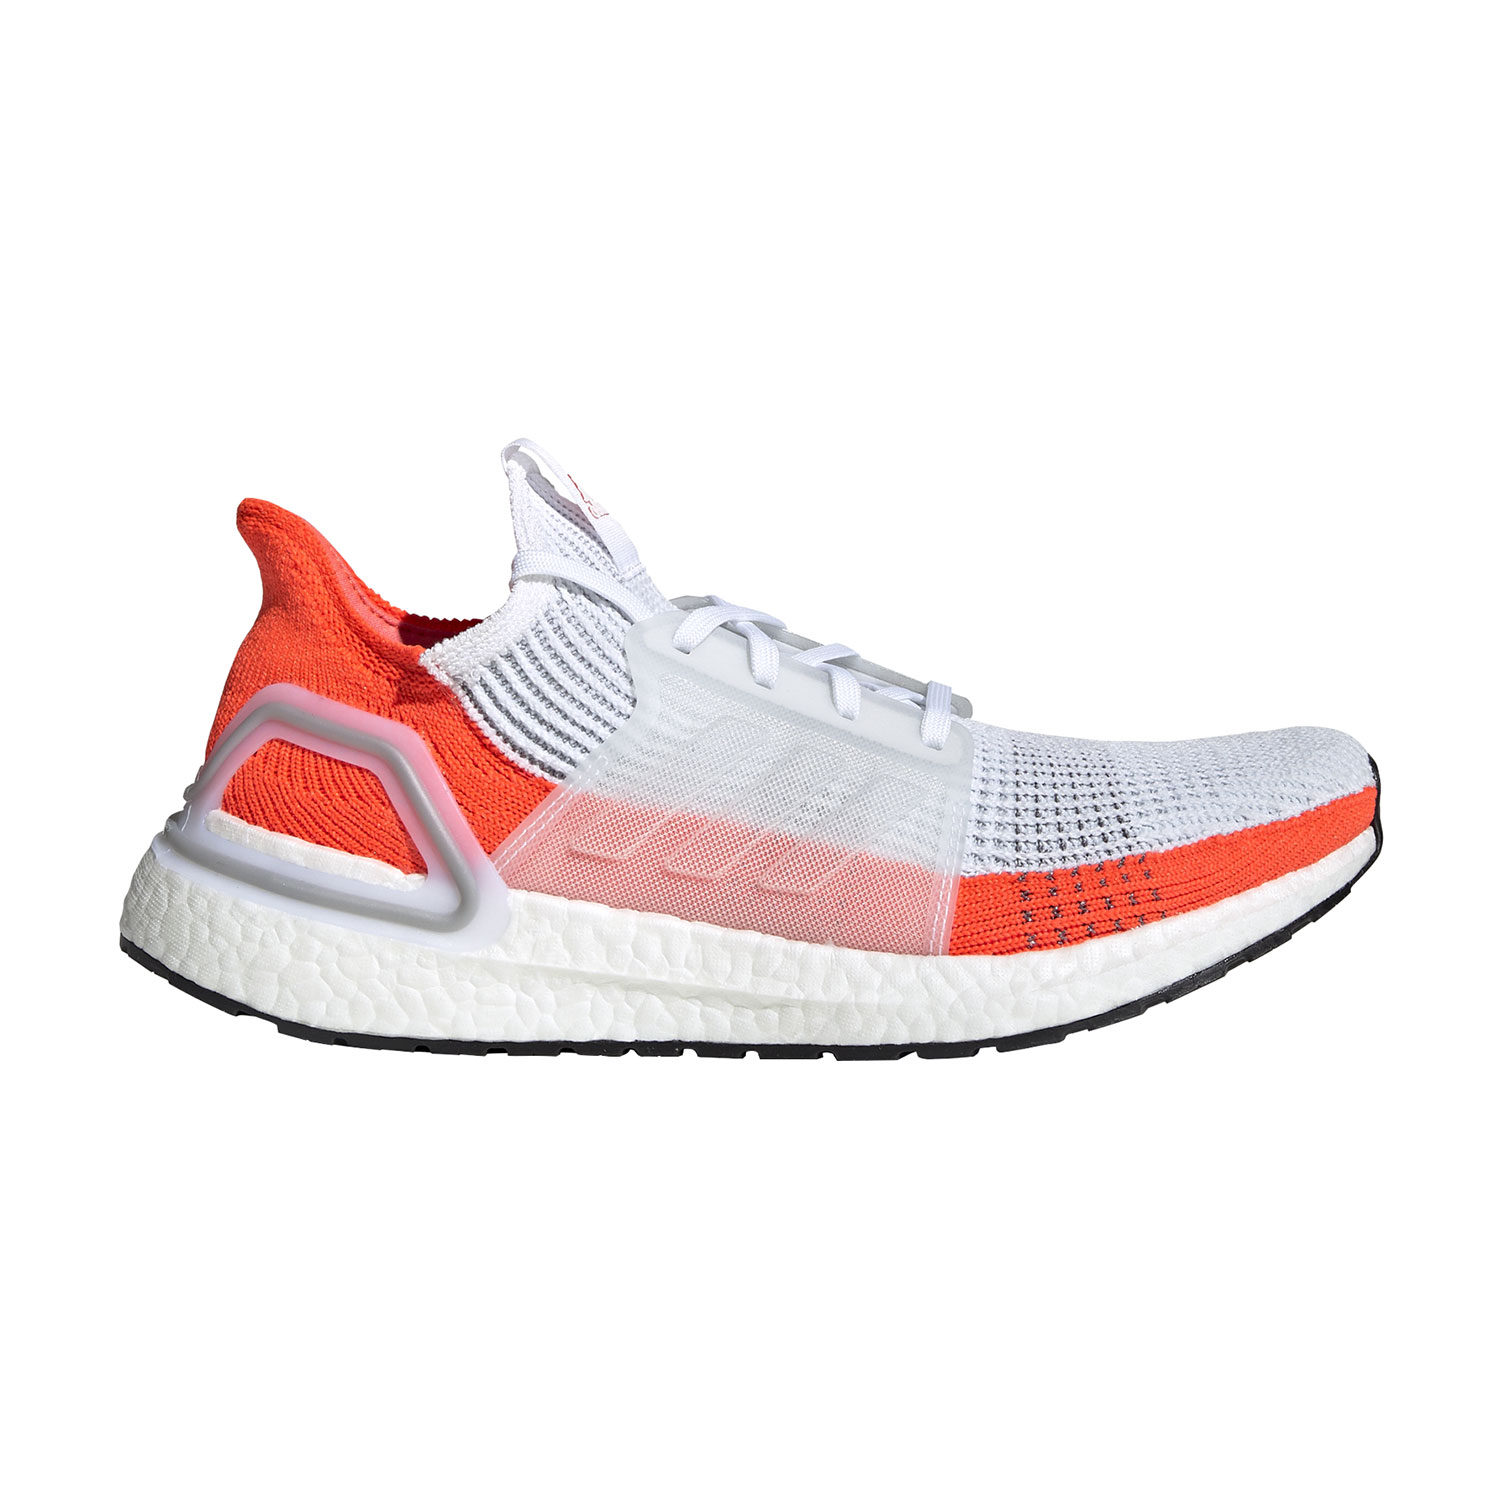 Adidas Ultraboost 19 - Ftwr White/Blue Tint S18/Grey Two F17